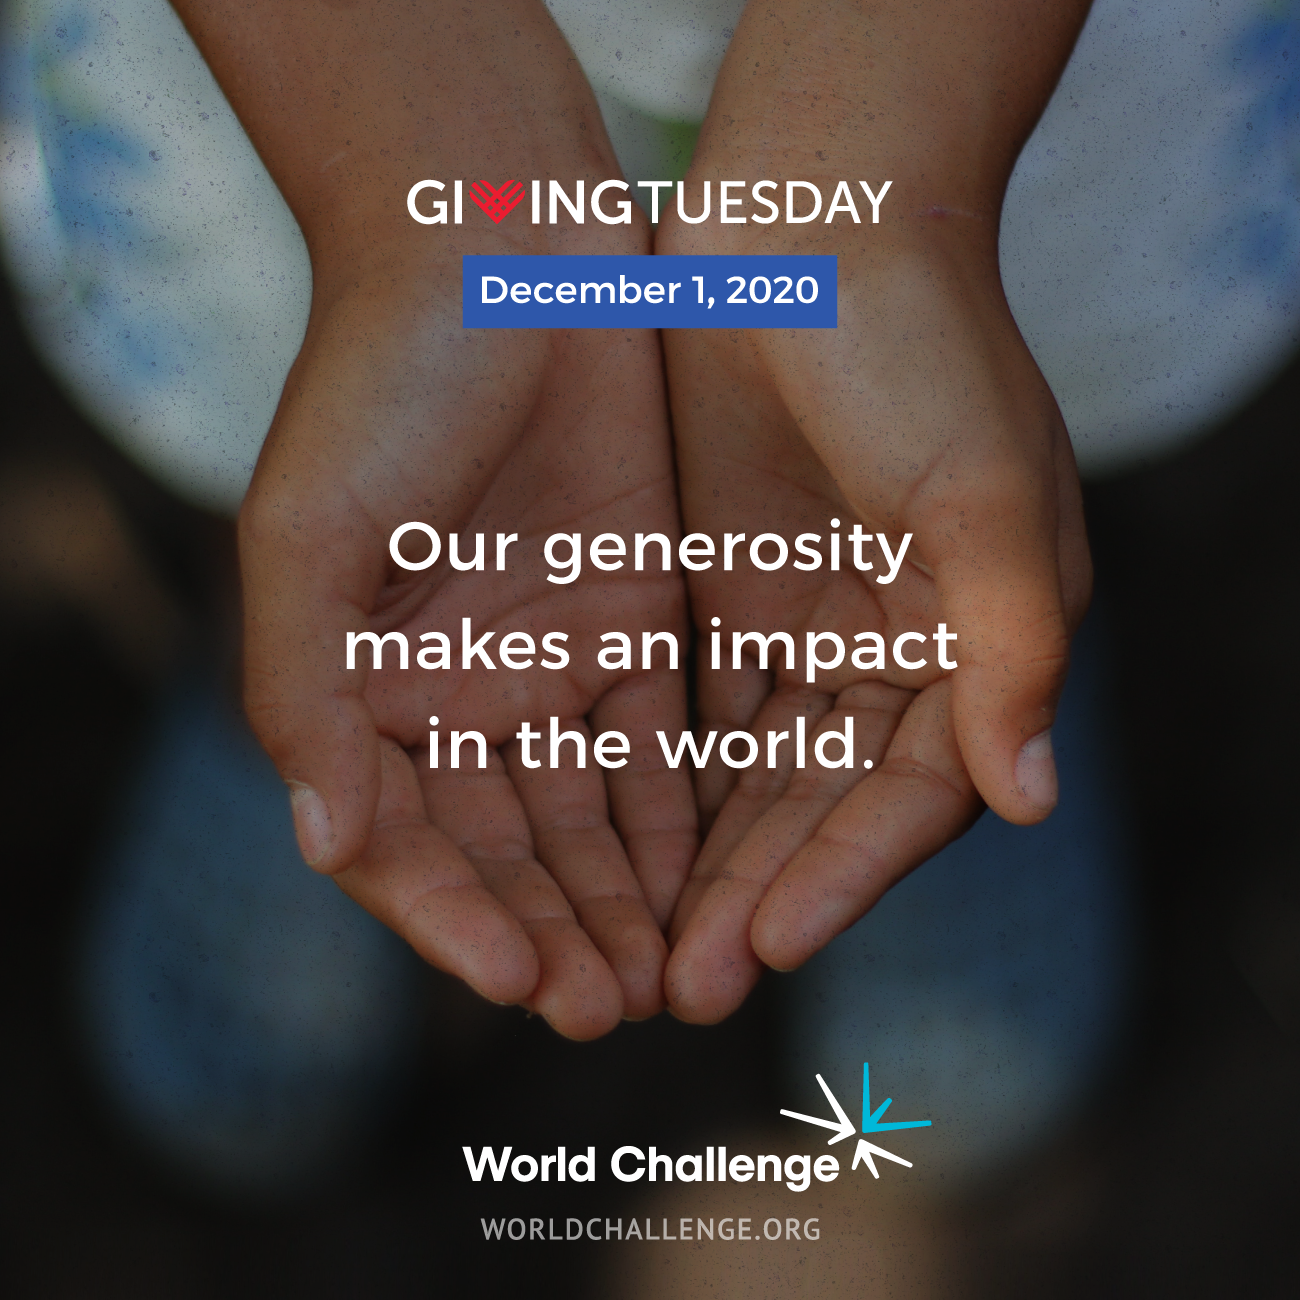 Our generosity makes an impact in the world.